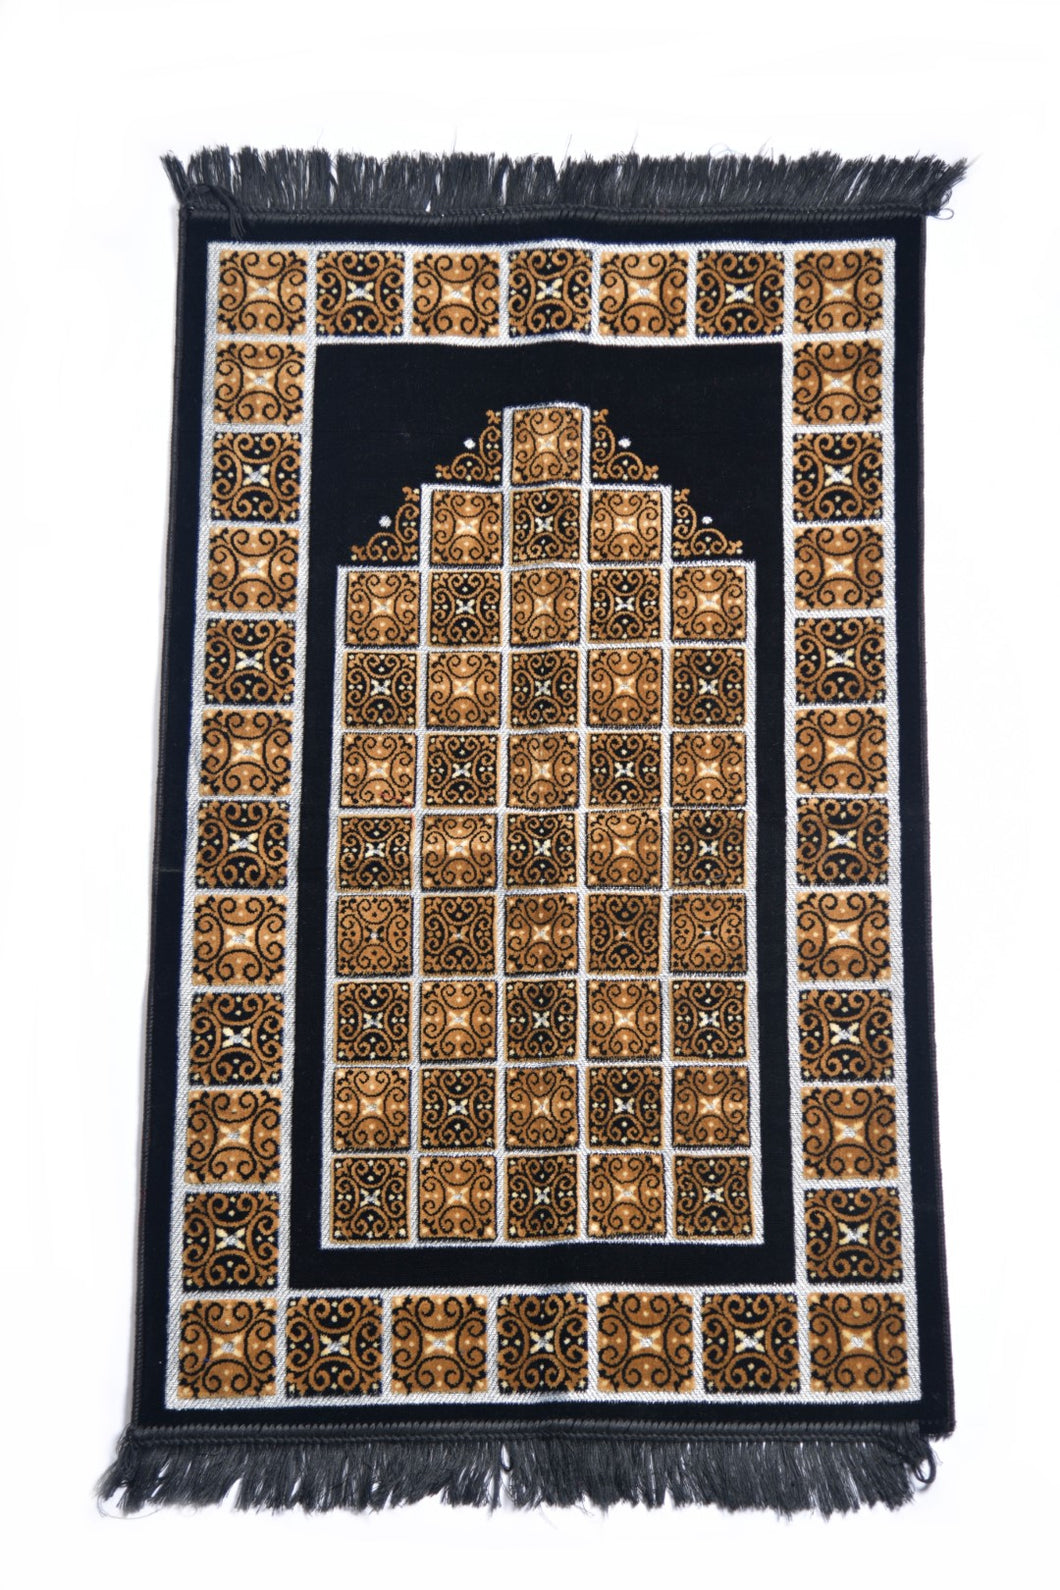 Al Arabia Ultra Lurex Muslim Prayer Rug - Very Thick Plush Velvet - Square Motifs Design & Fringes On Both Sides - Islamic Prayer Mat - Ideal Gift for Ramadan & Special Occasions, 44 x 27